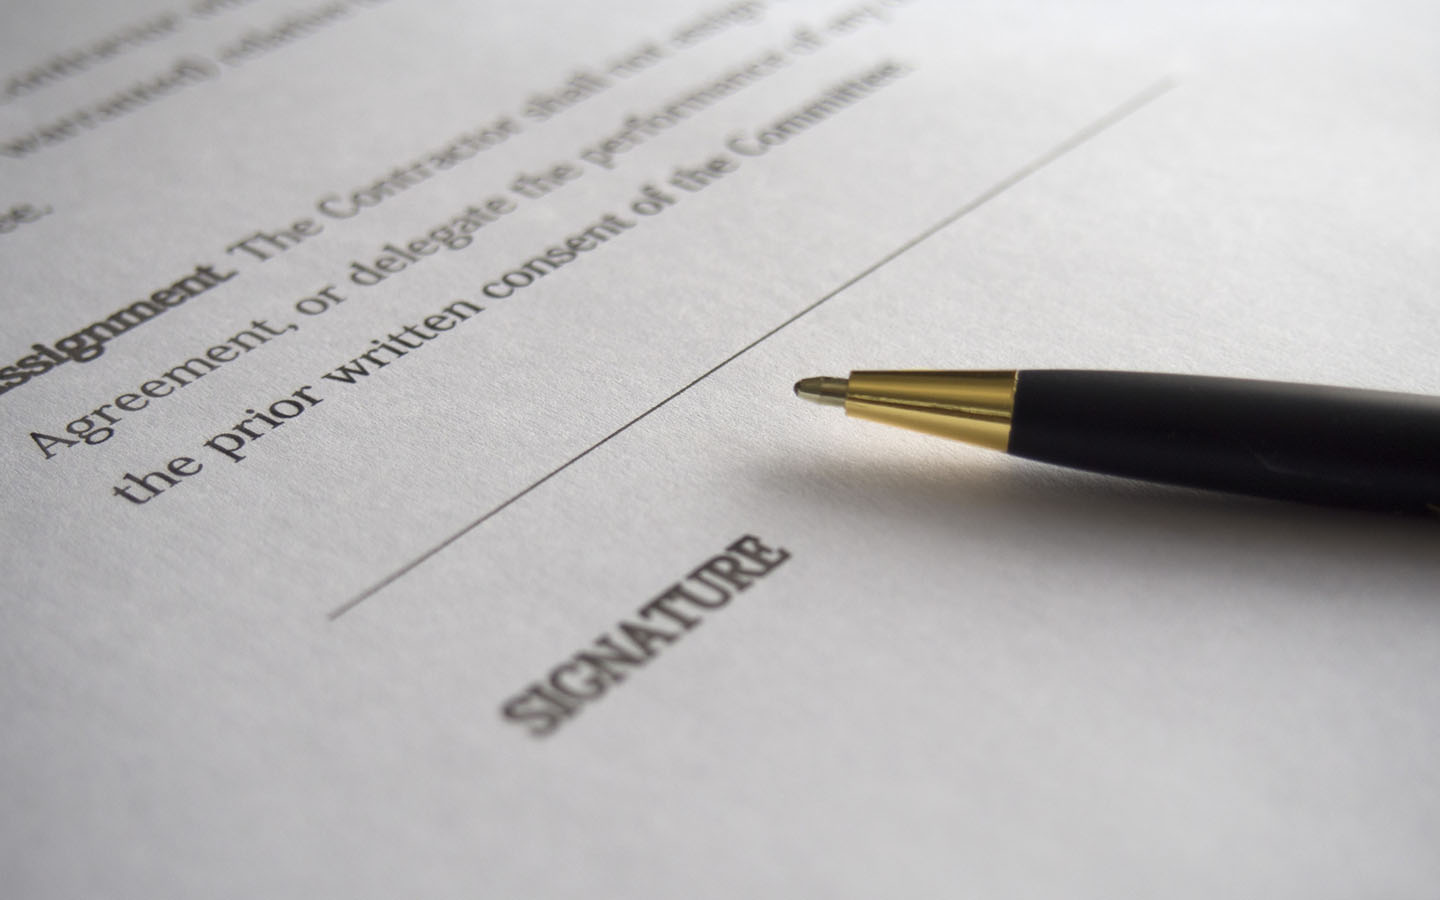 It is better to confirm with lenders before investing in apartments and signing agreement